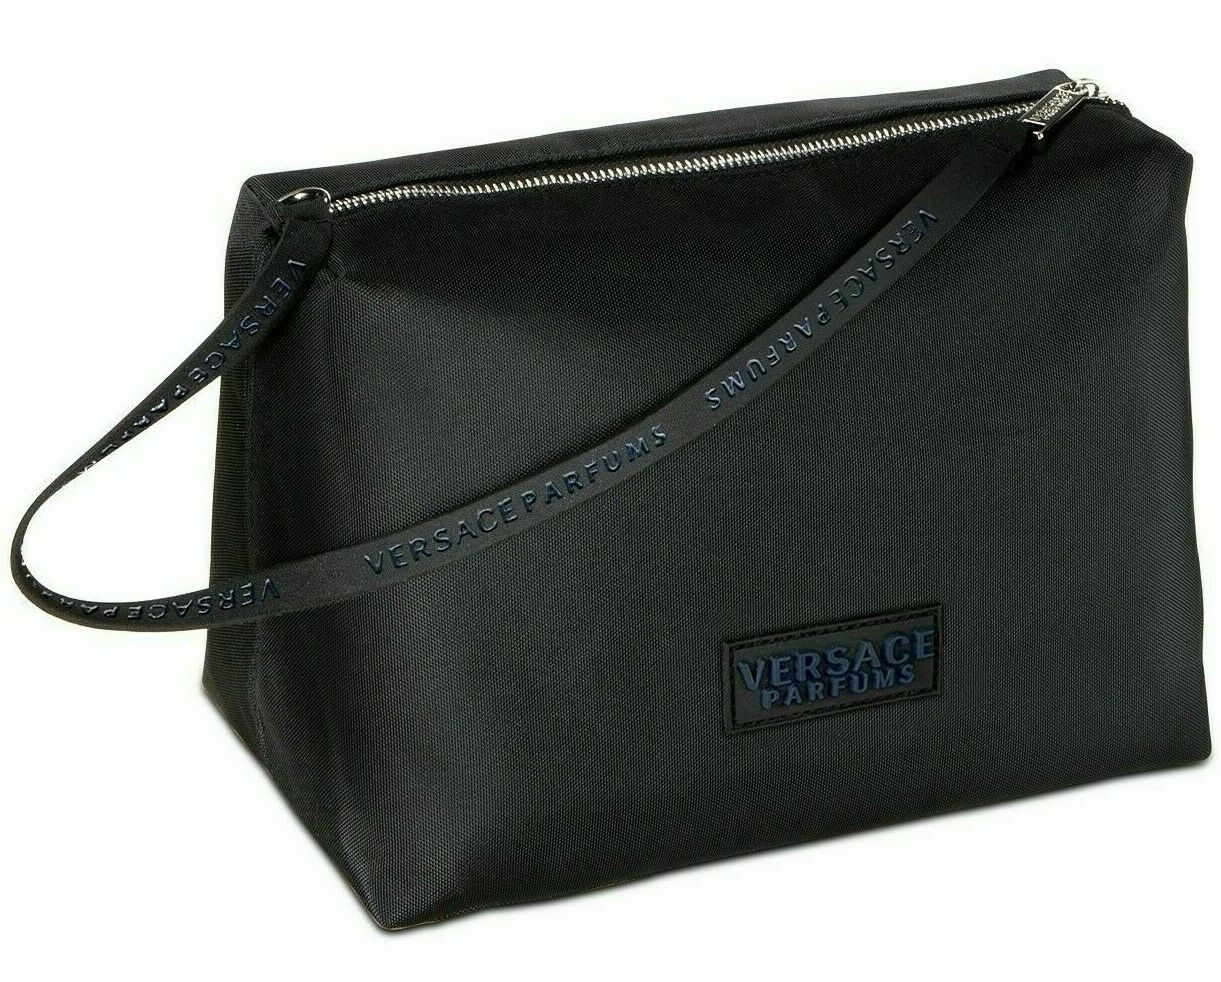 VERSACE BLACK toiletry pouch travel trousse bag wristlet NEW